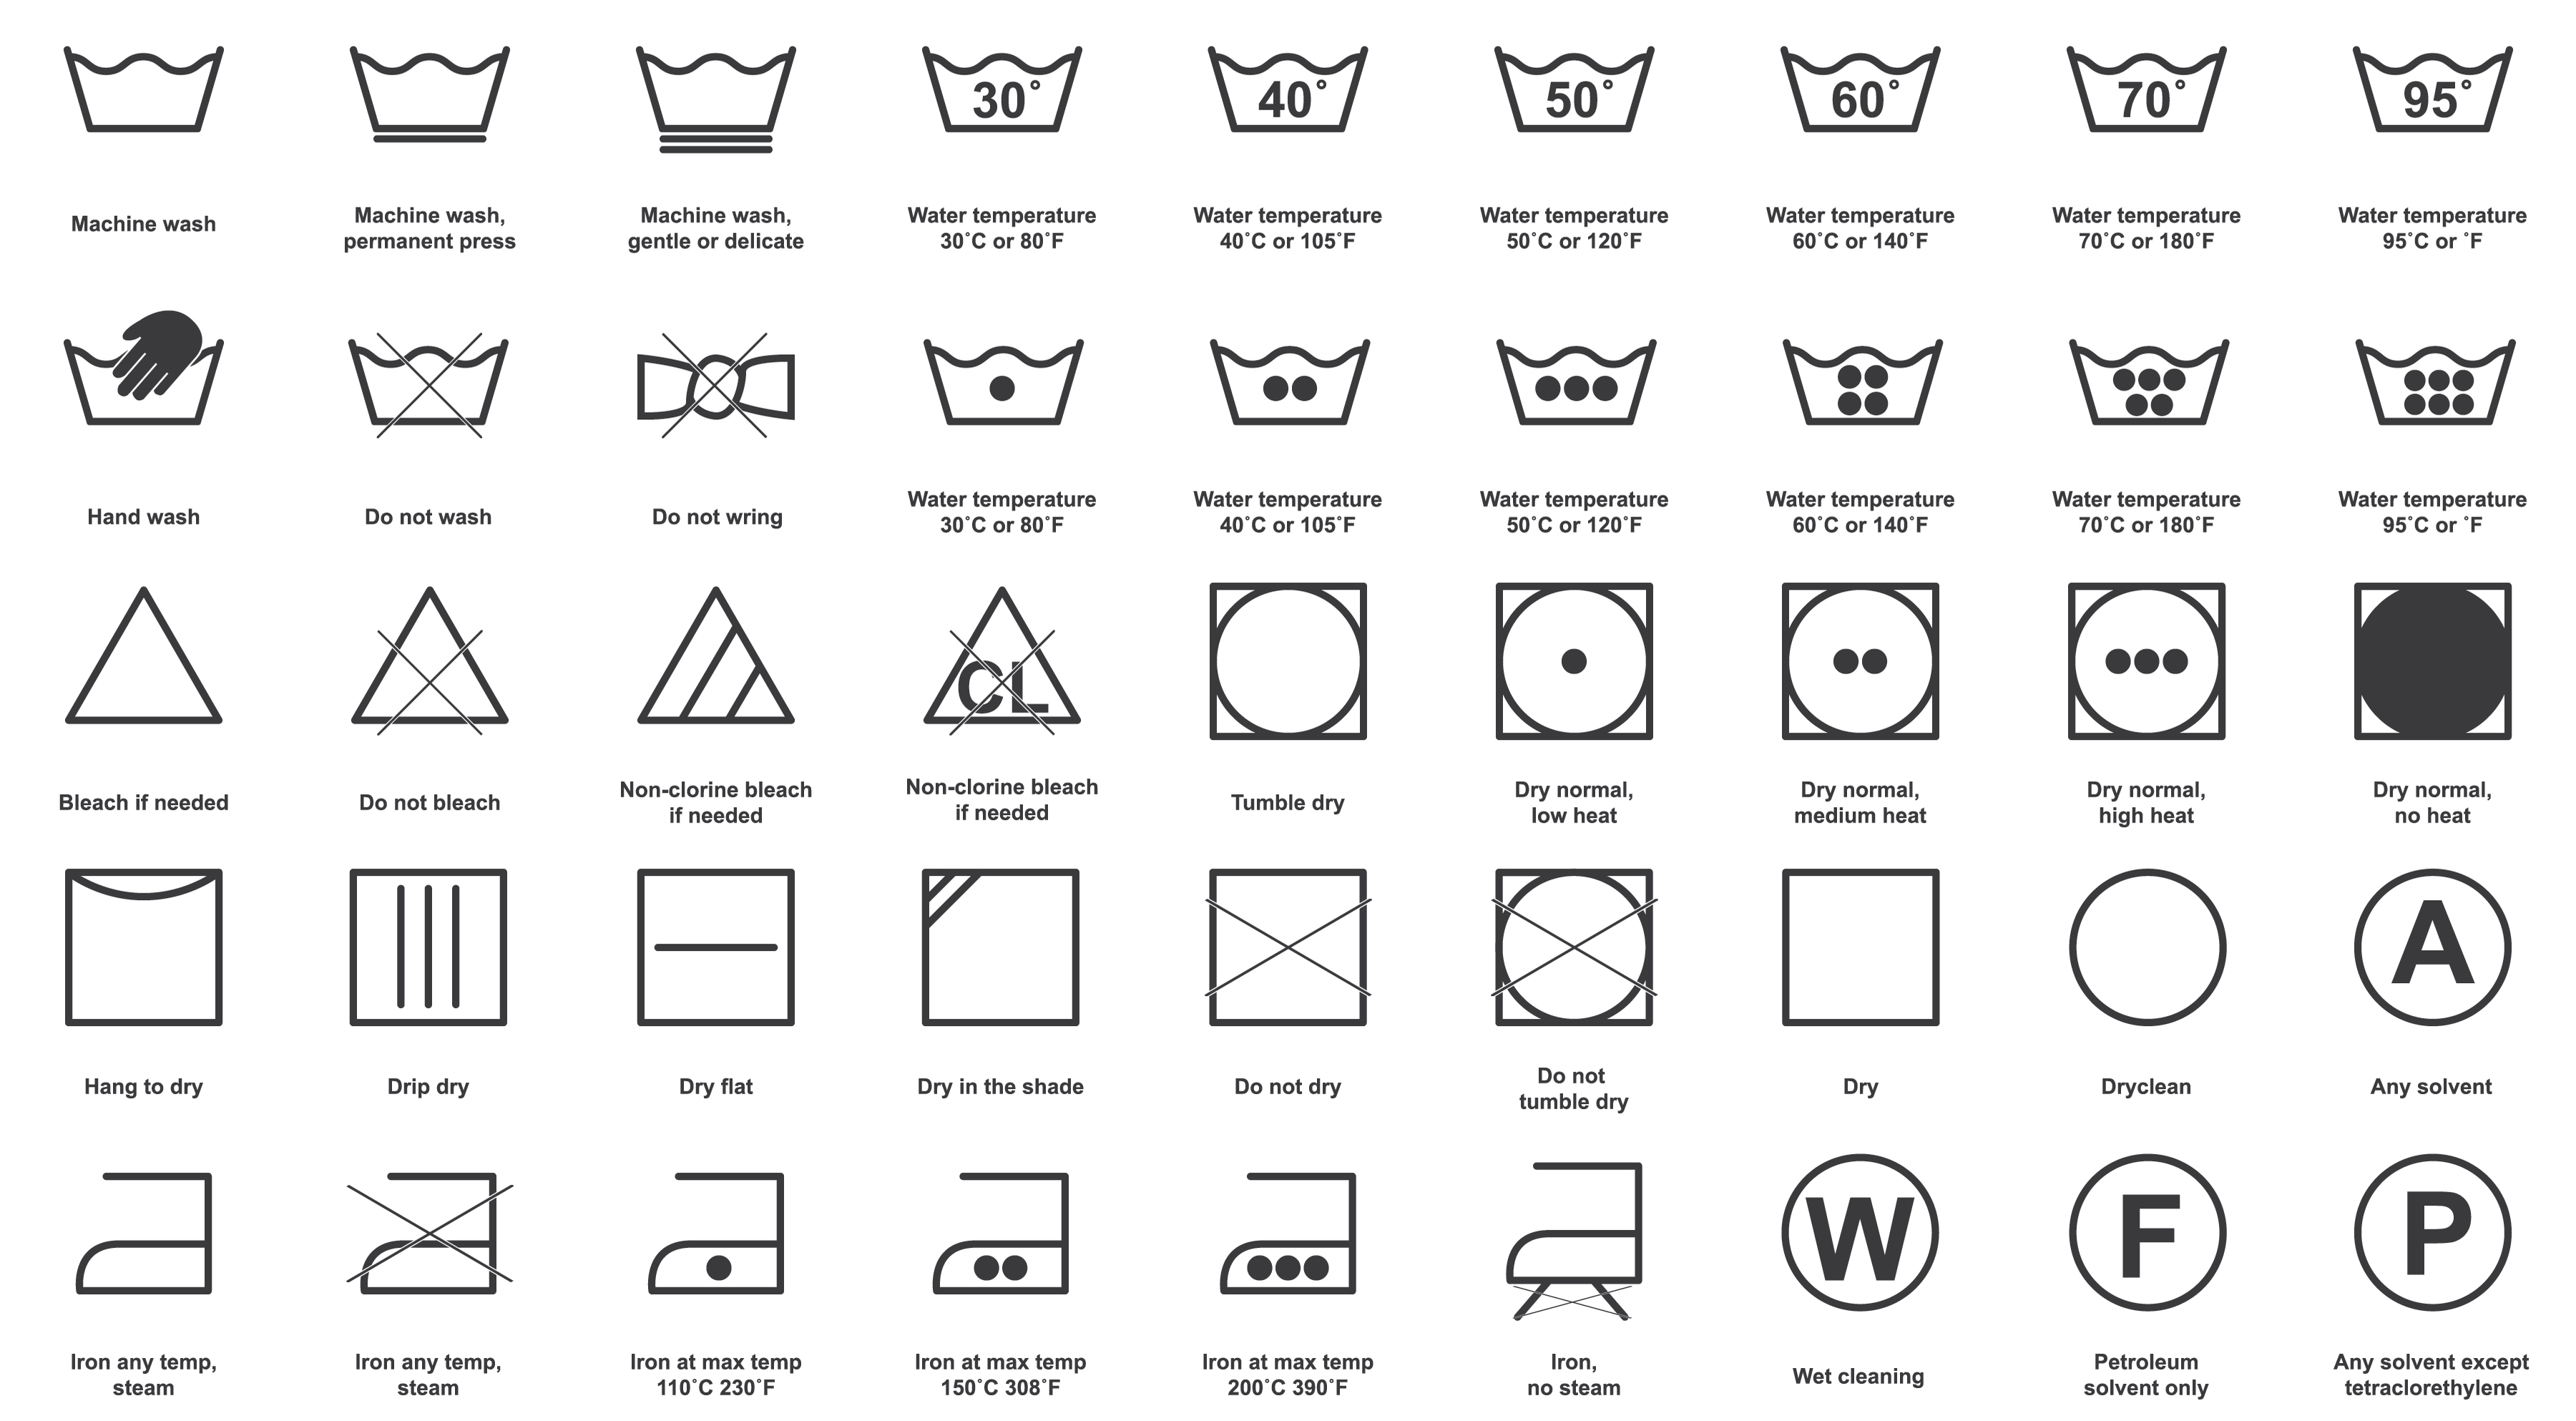 Complete guide to all wash symbols